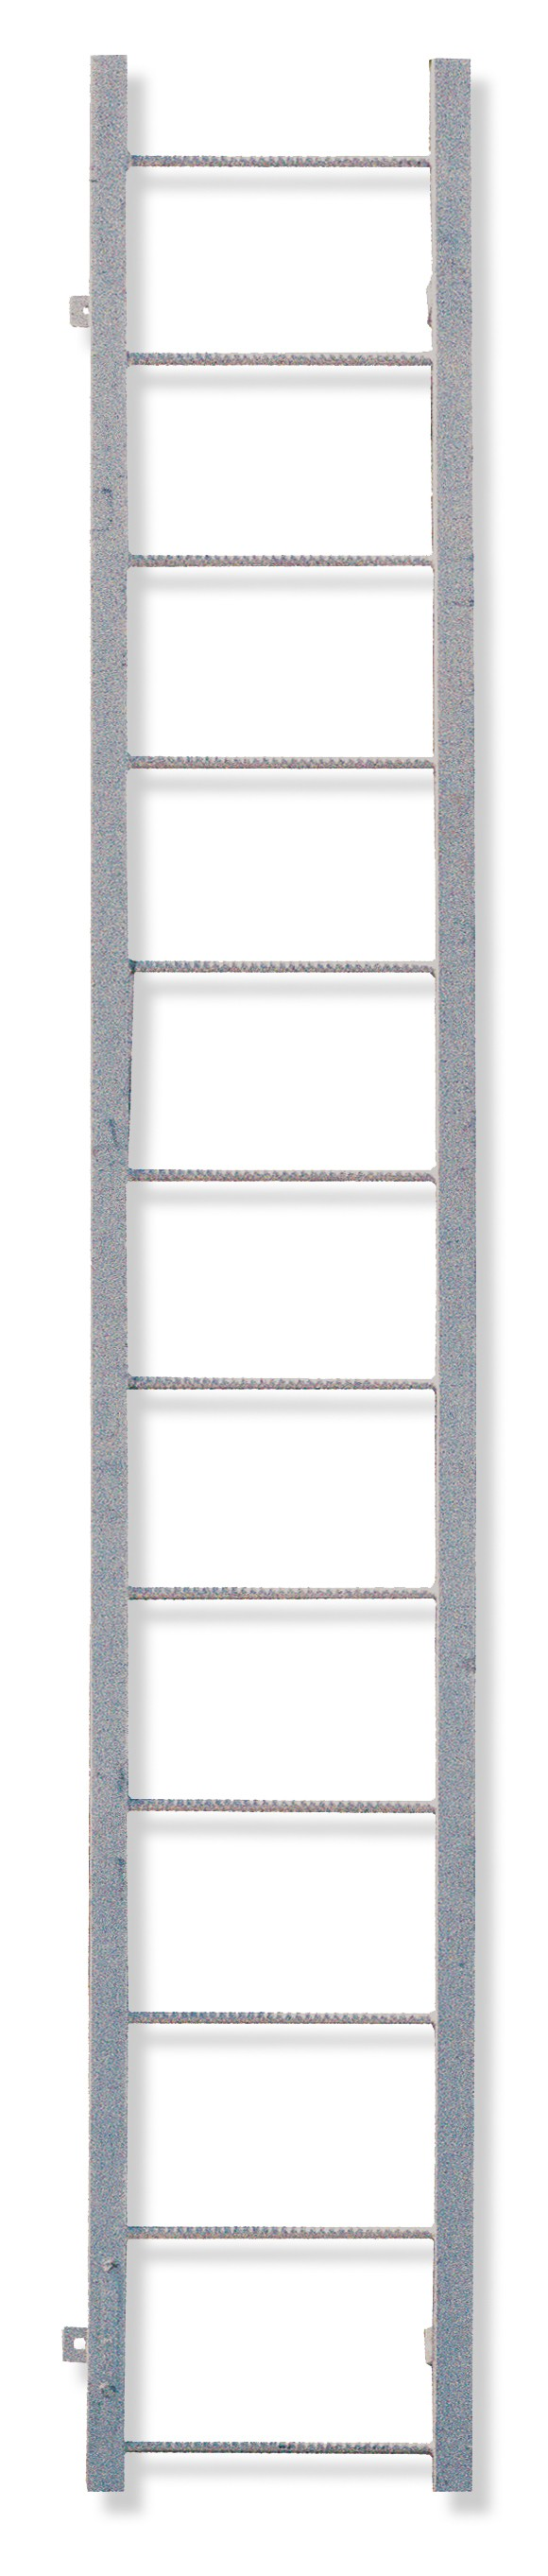 304 Stainless Steel Fixed Ladder Often Used In Water